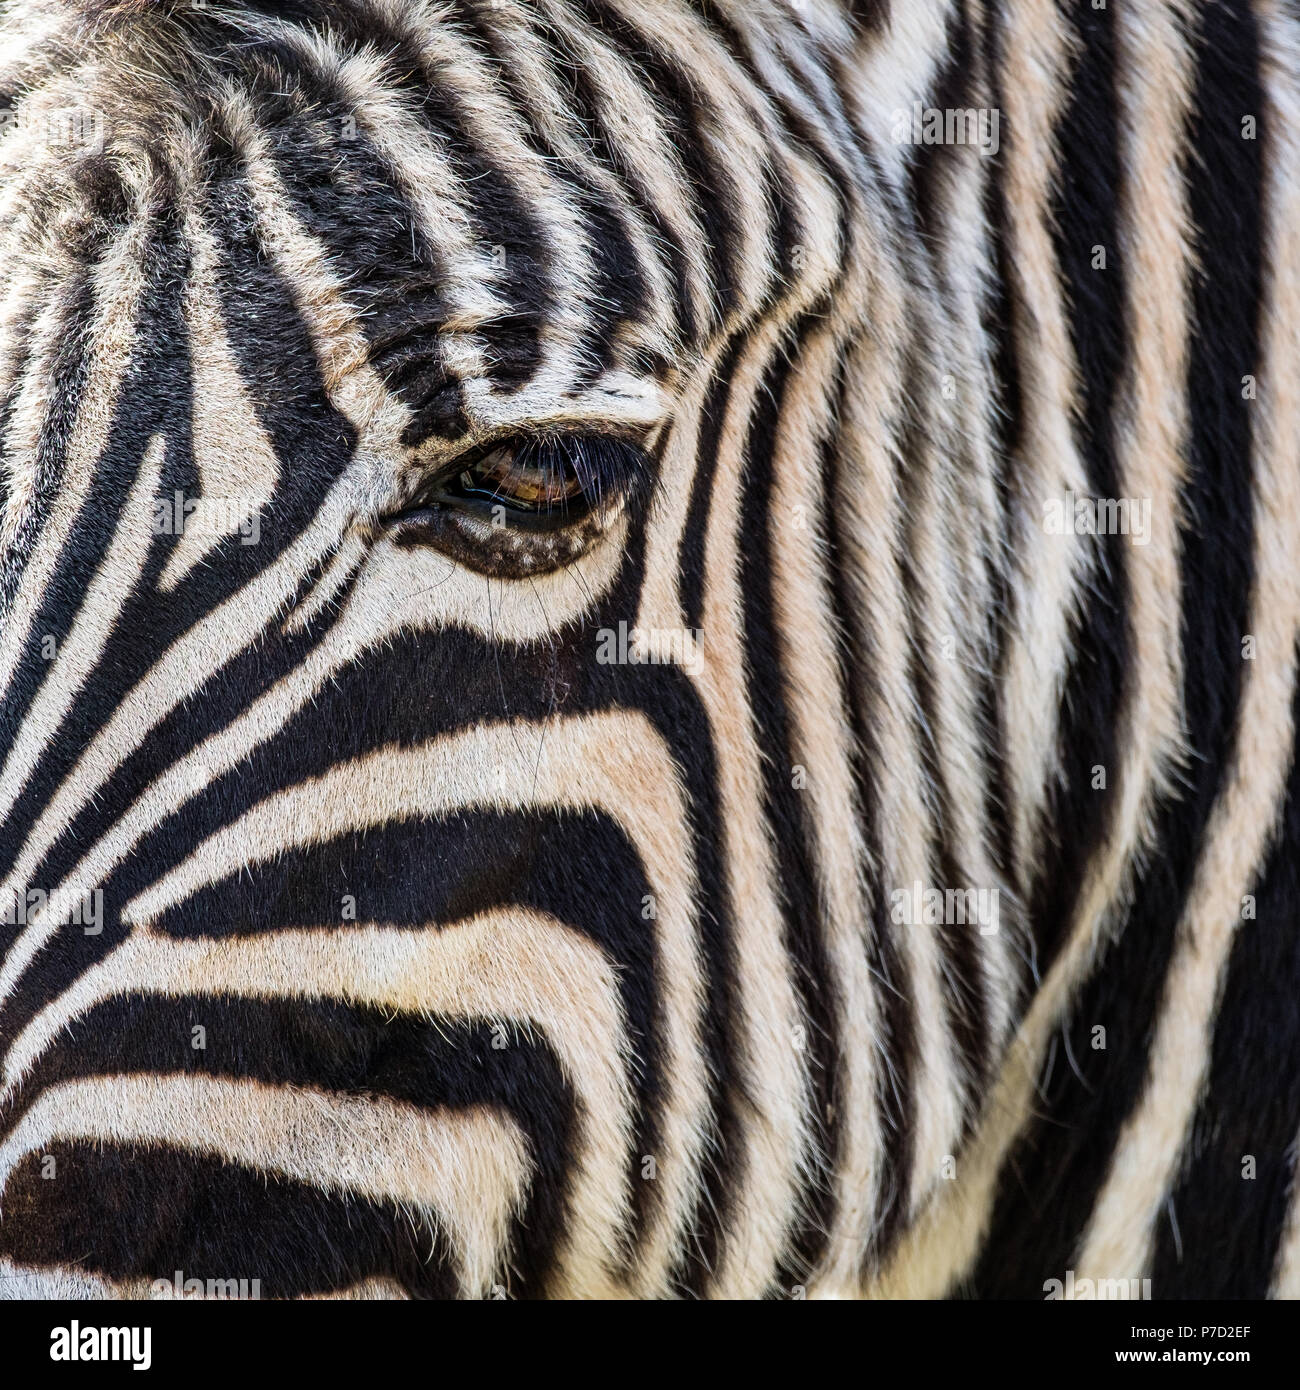 Close up from a zebra horse eye - Stock Image